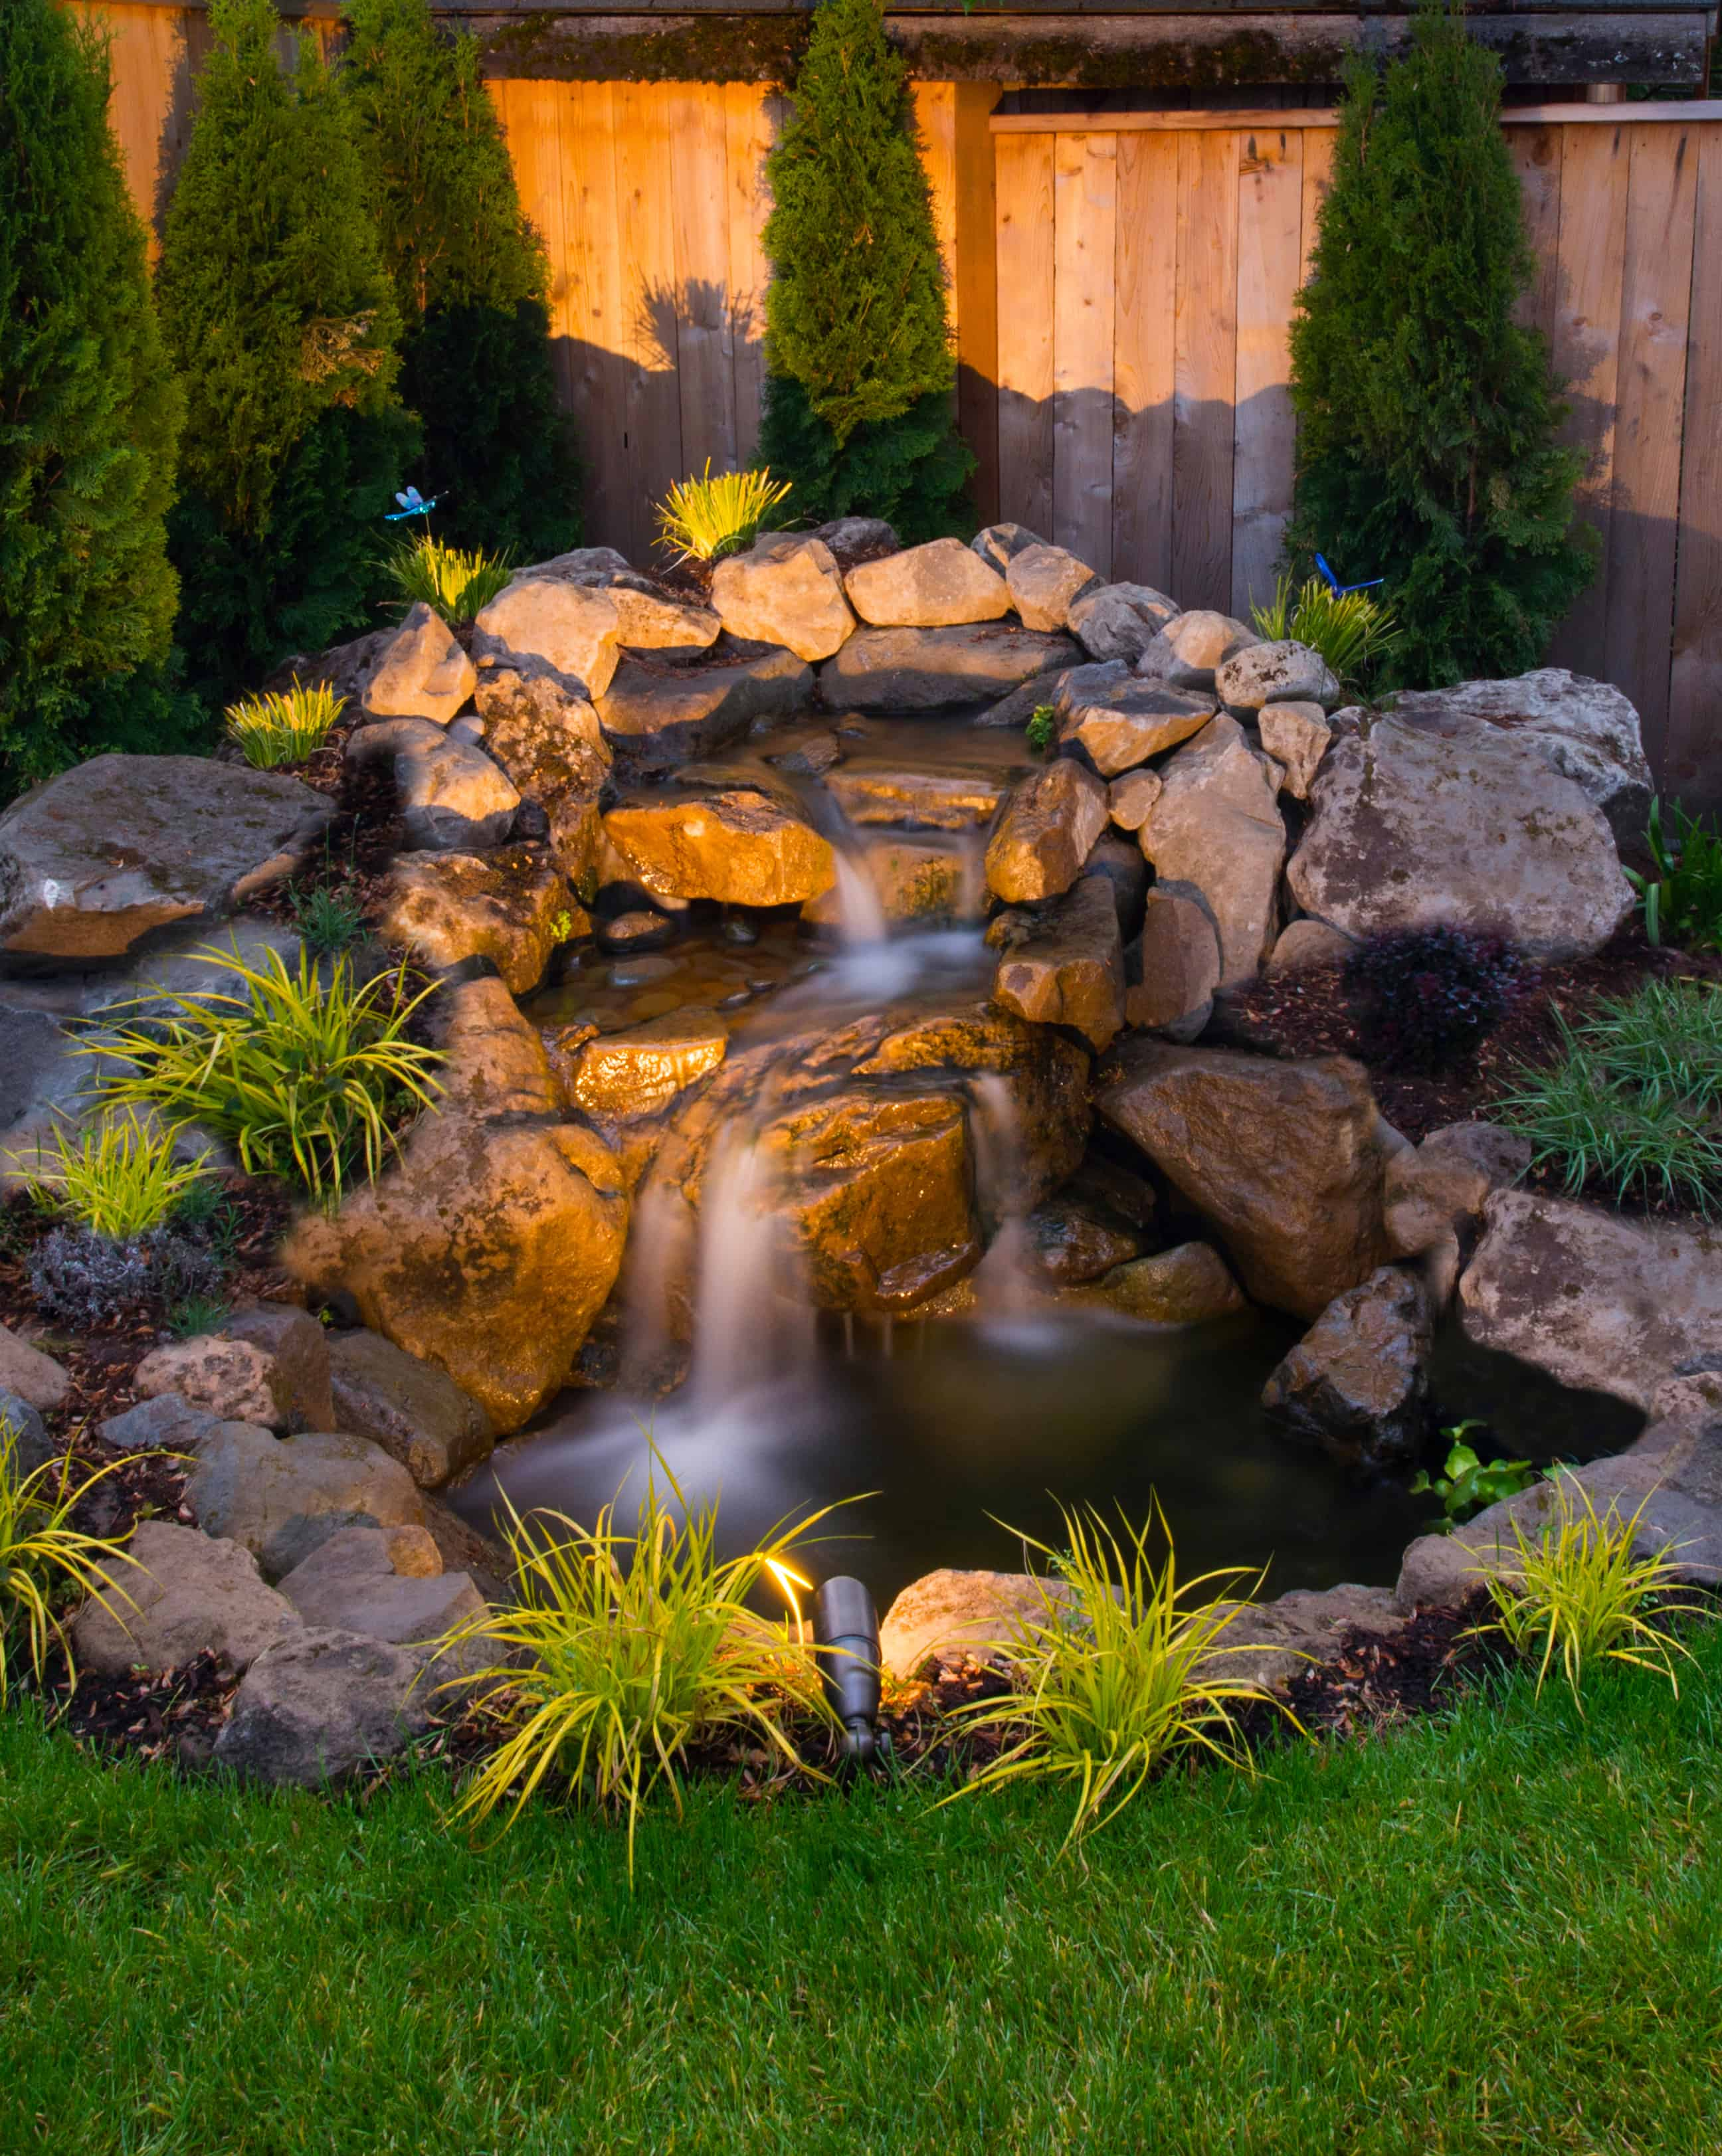 Check out this amazing backyard pond idea.